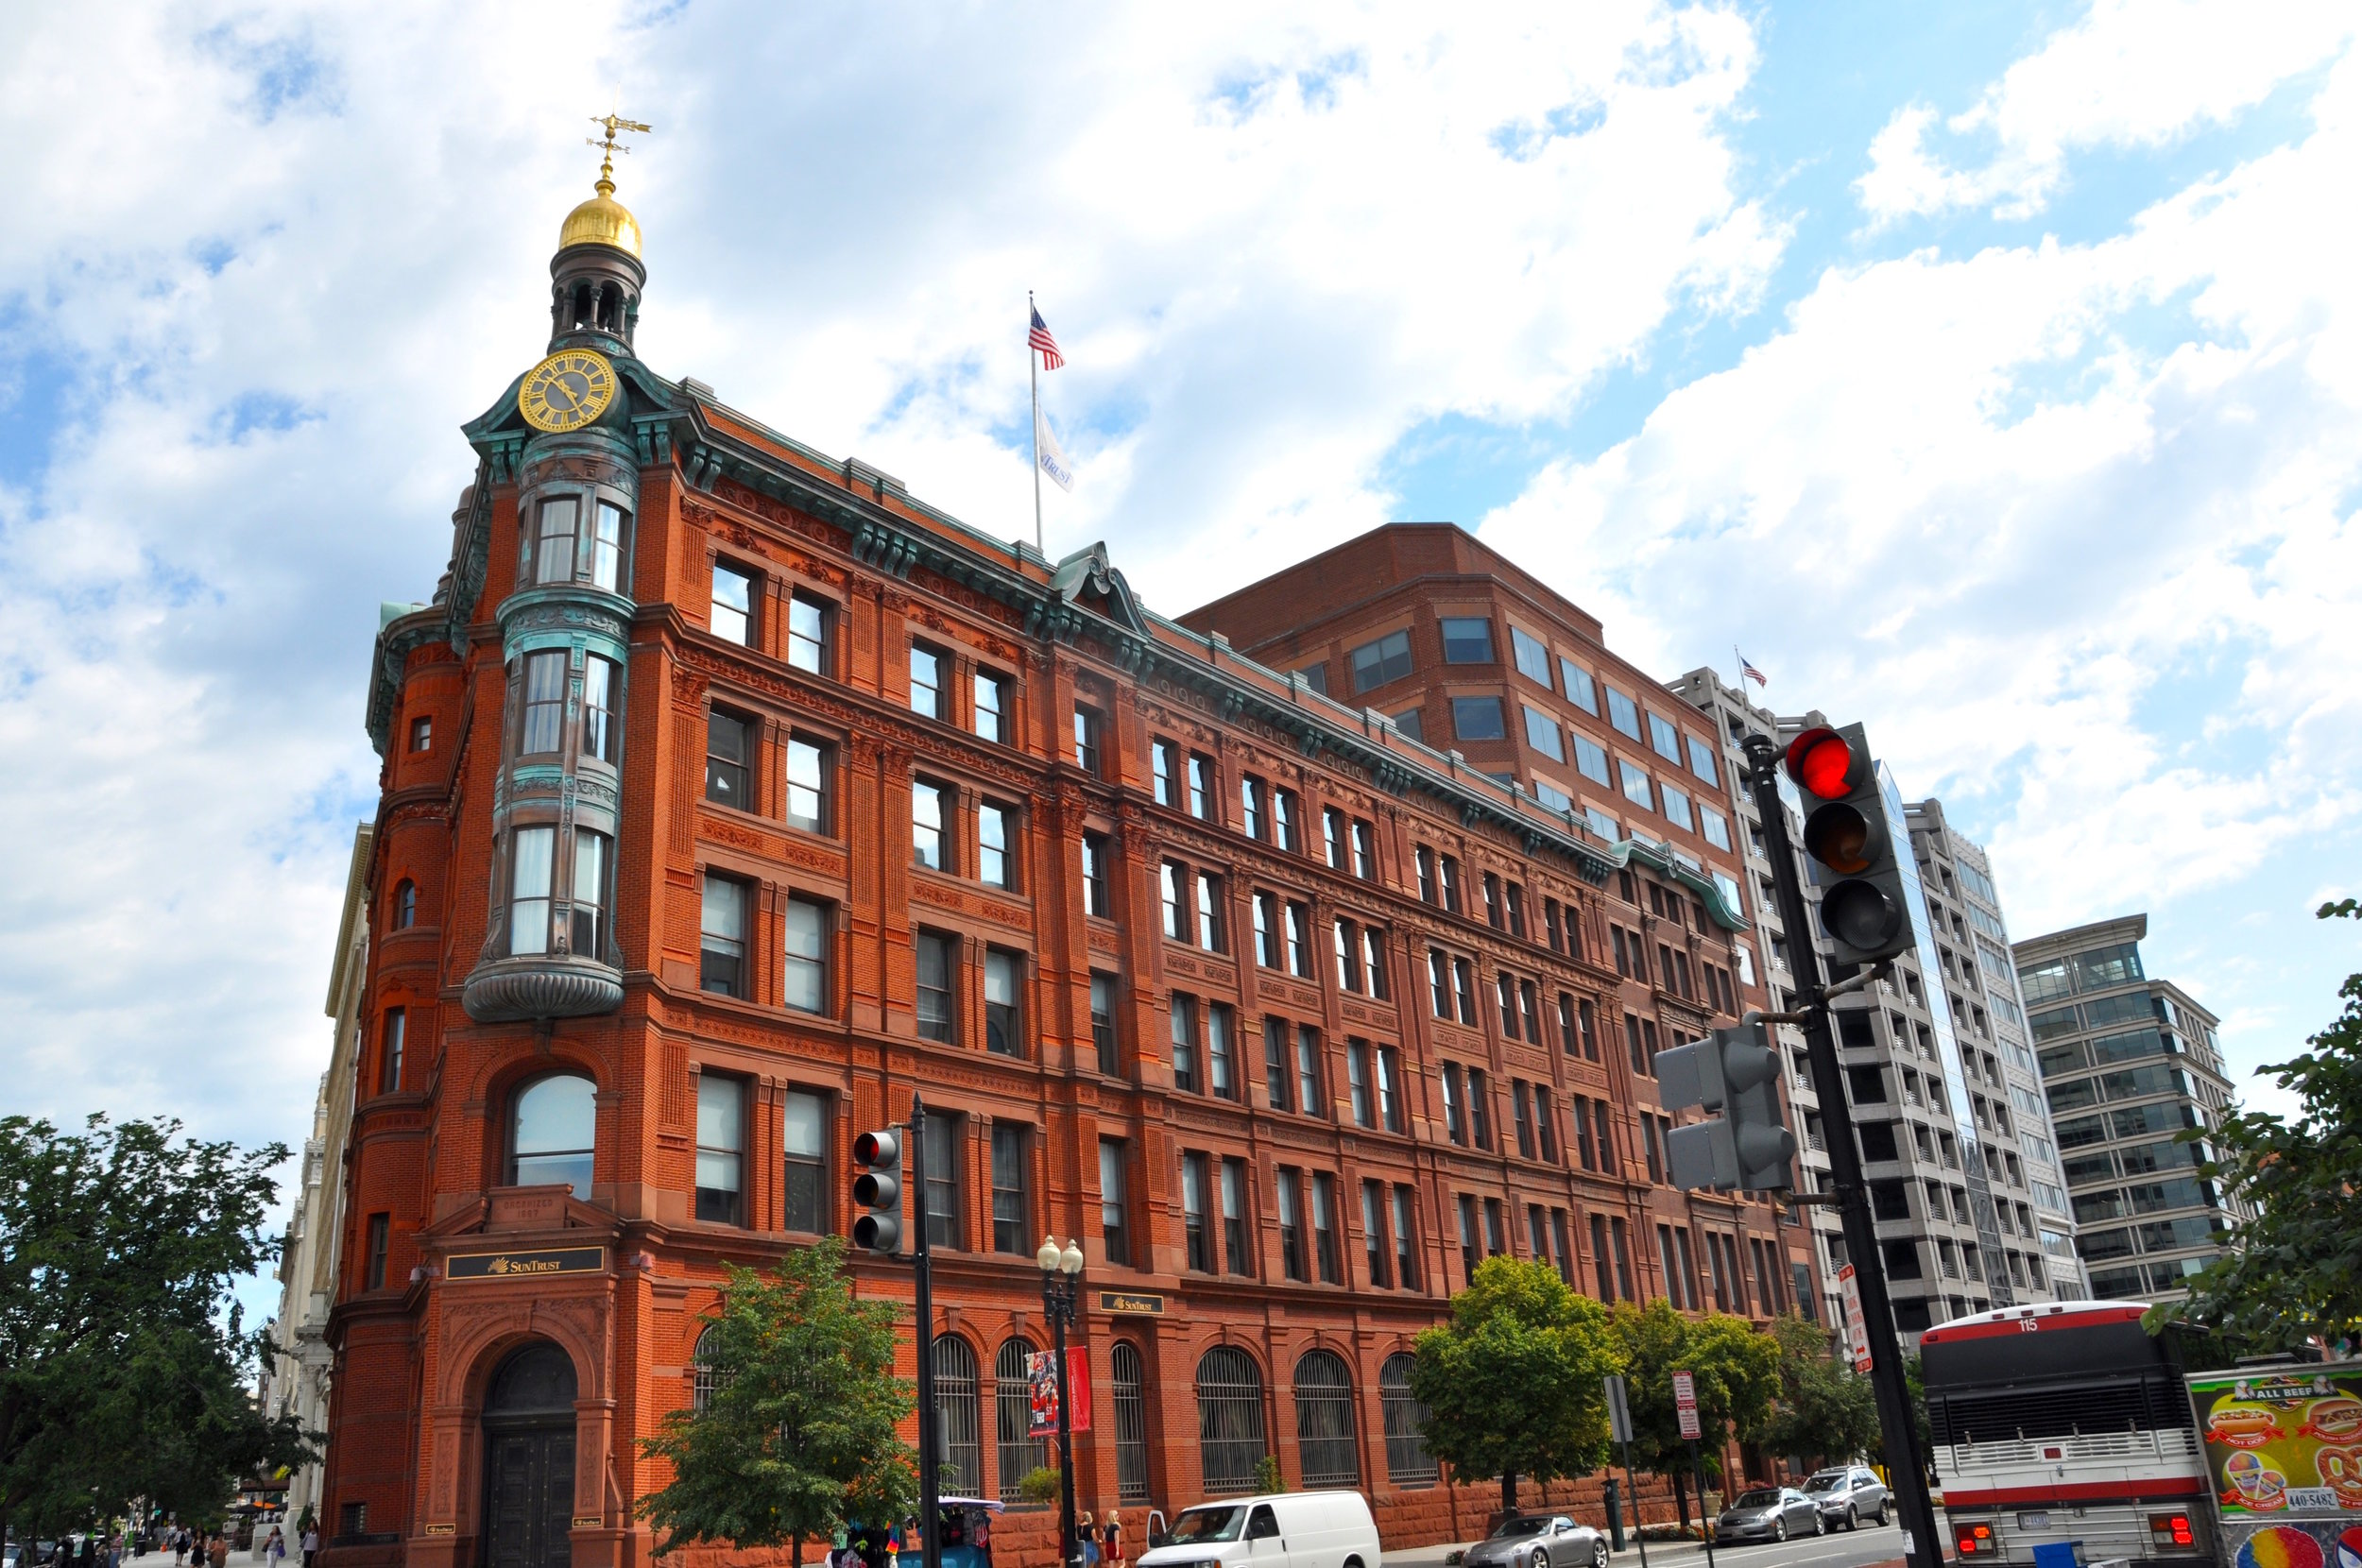 Own REW Buyer's Edge Real Estate DC Homes and condos for sale Penn Quarter DC Red Brick